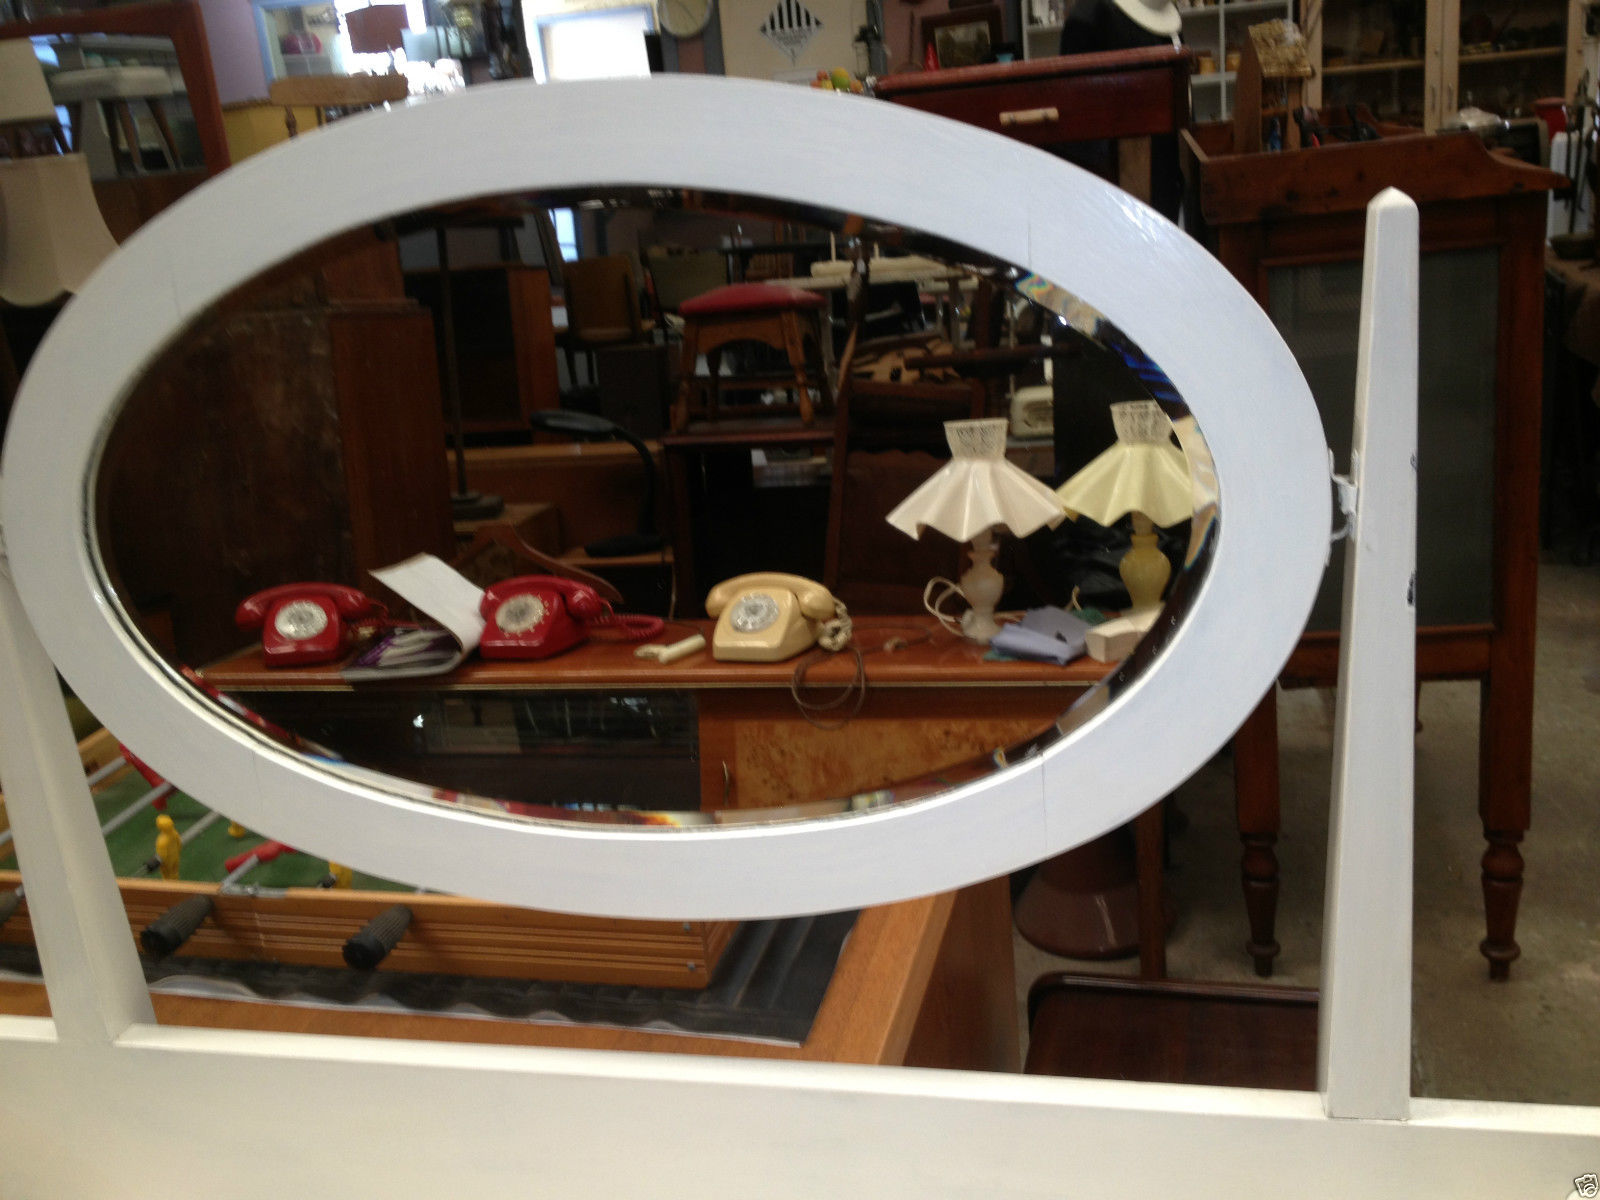 Vintage Shabby Chic Dressing Table With Oval Shaped Mirror | Melbourne | Halsey Road Recyclers